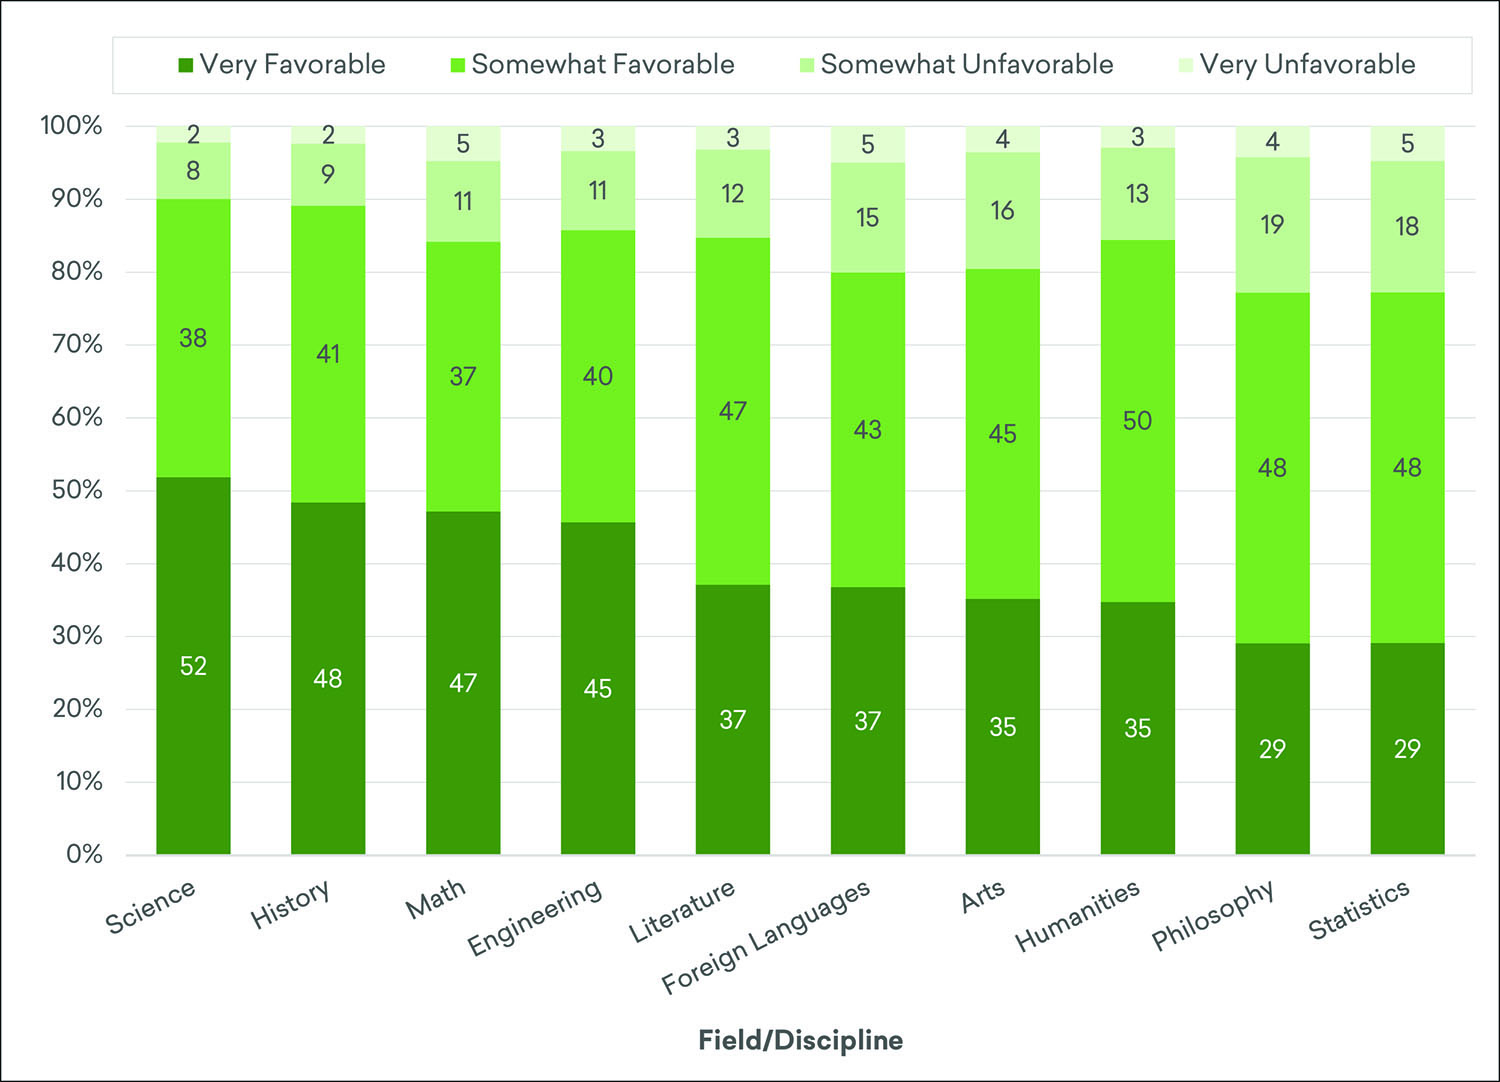 Estimated Shares of Adults with Favorable and Unfavorable Impressions of Academic Fields and Disciplines, Fall 2019*